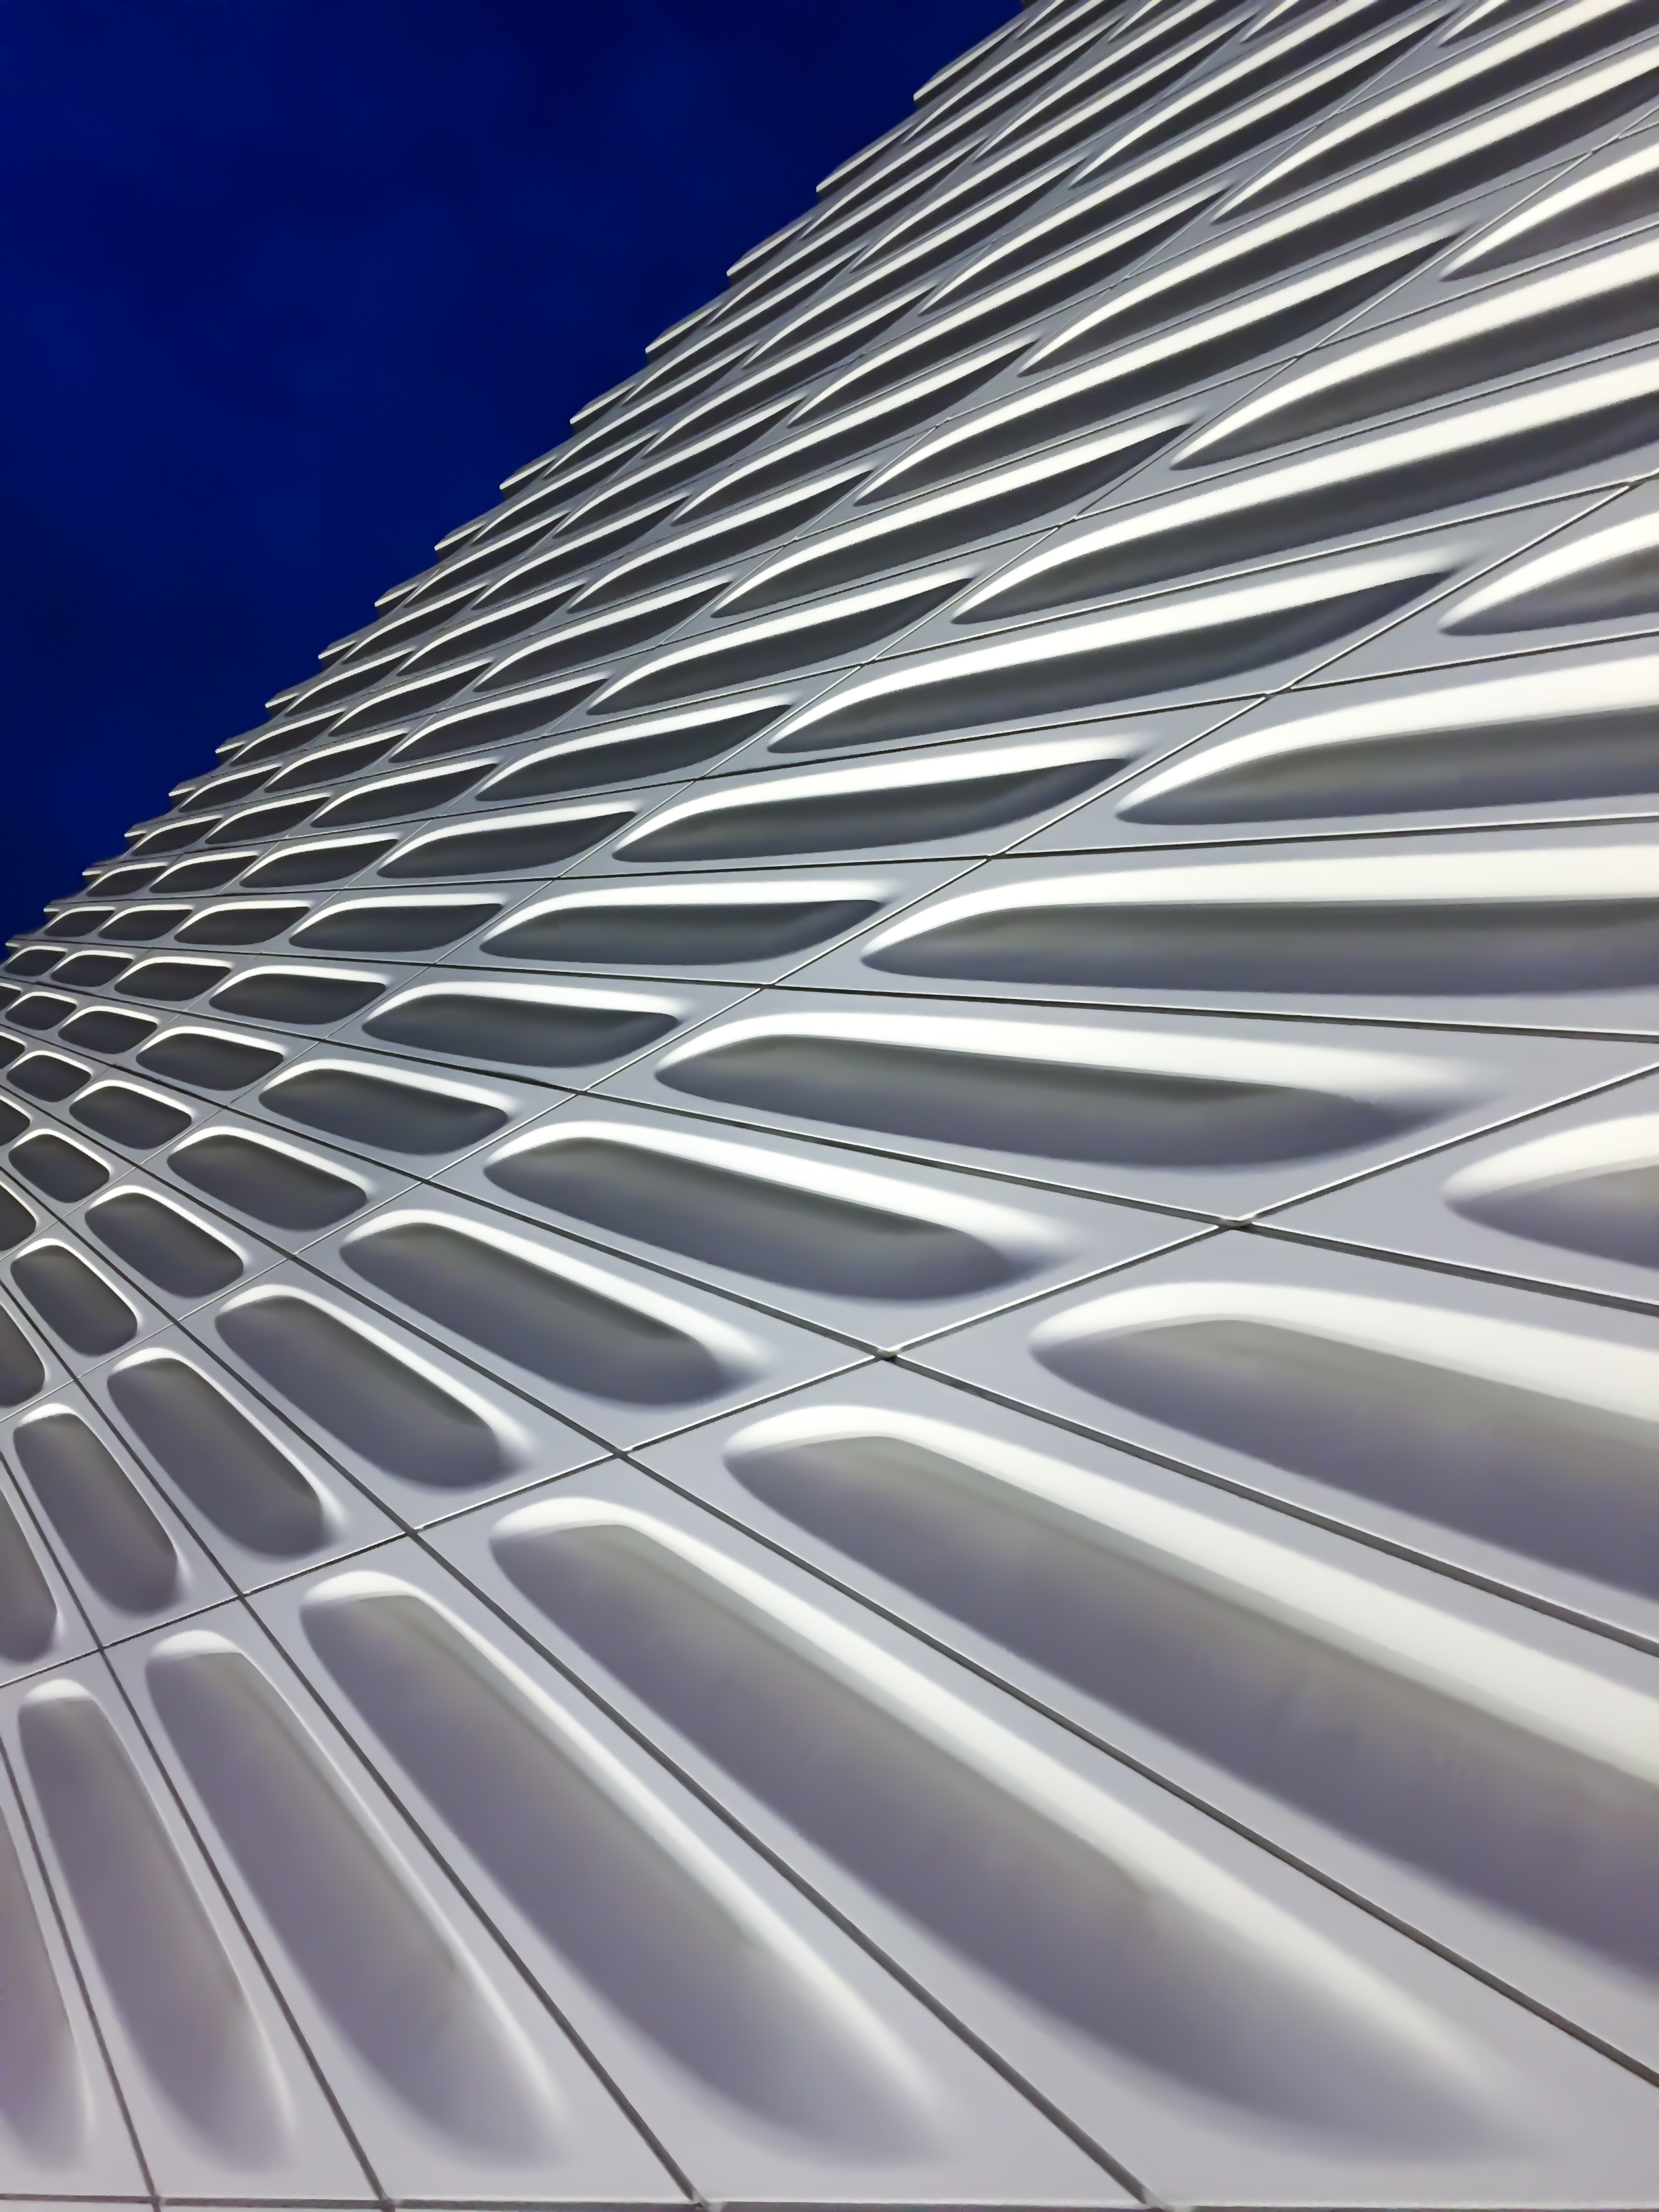 Architecture Photography Disney The Broad